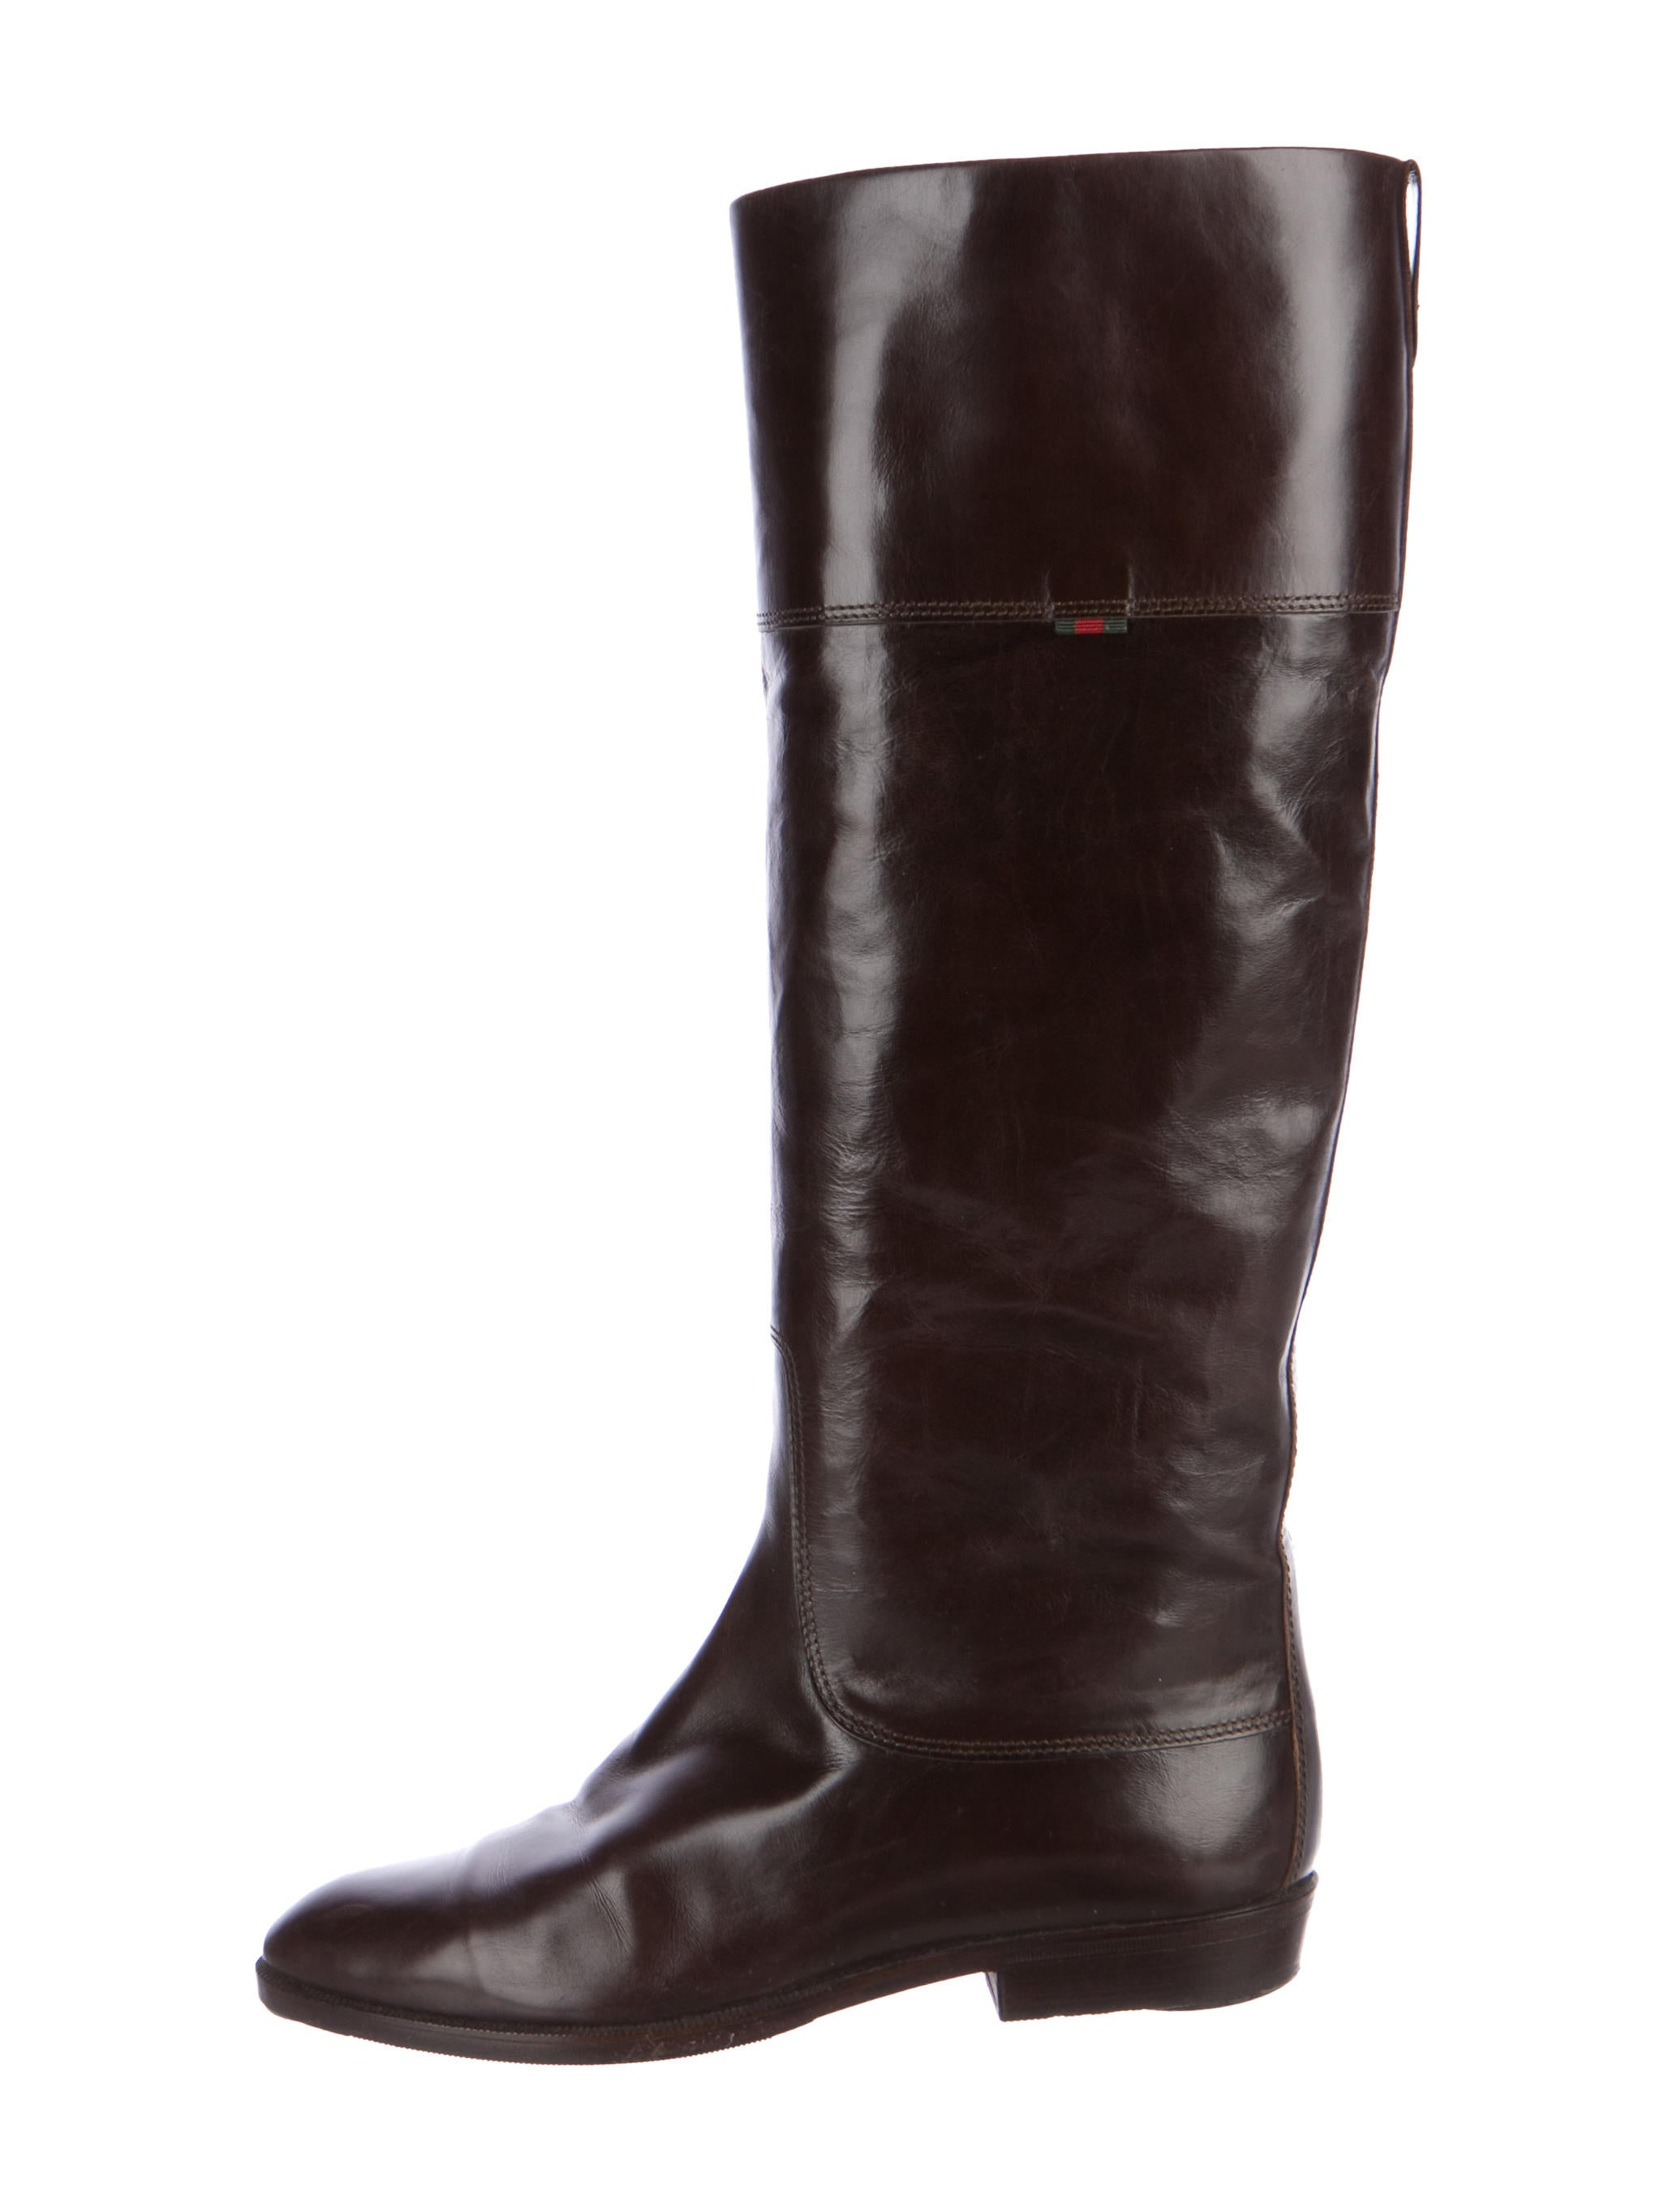 SCA Boots provides quality leather knee boots, leather thigh boots and leather calf boots for costumes at an affordable price. We have leather boots for men and women and you will find that our products are very versatile by design.